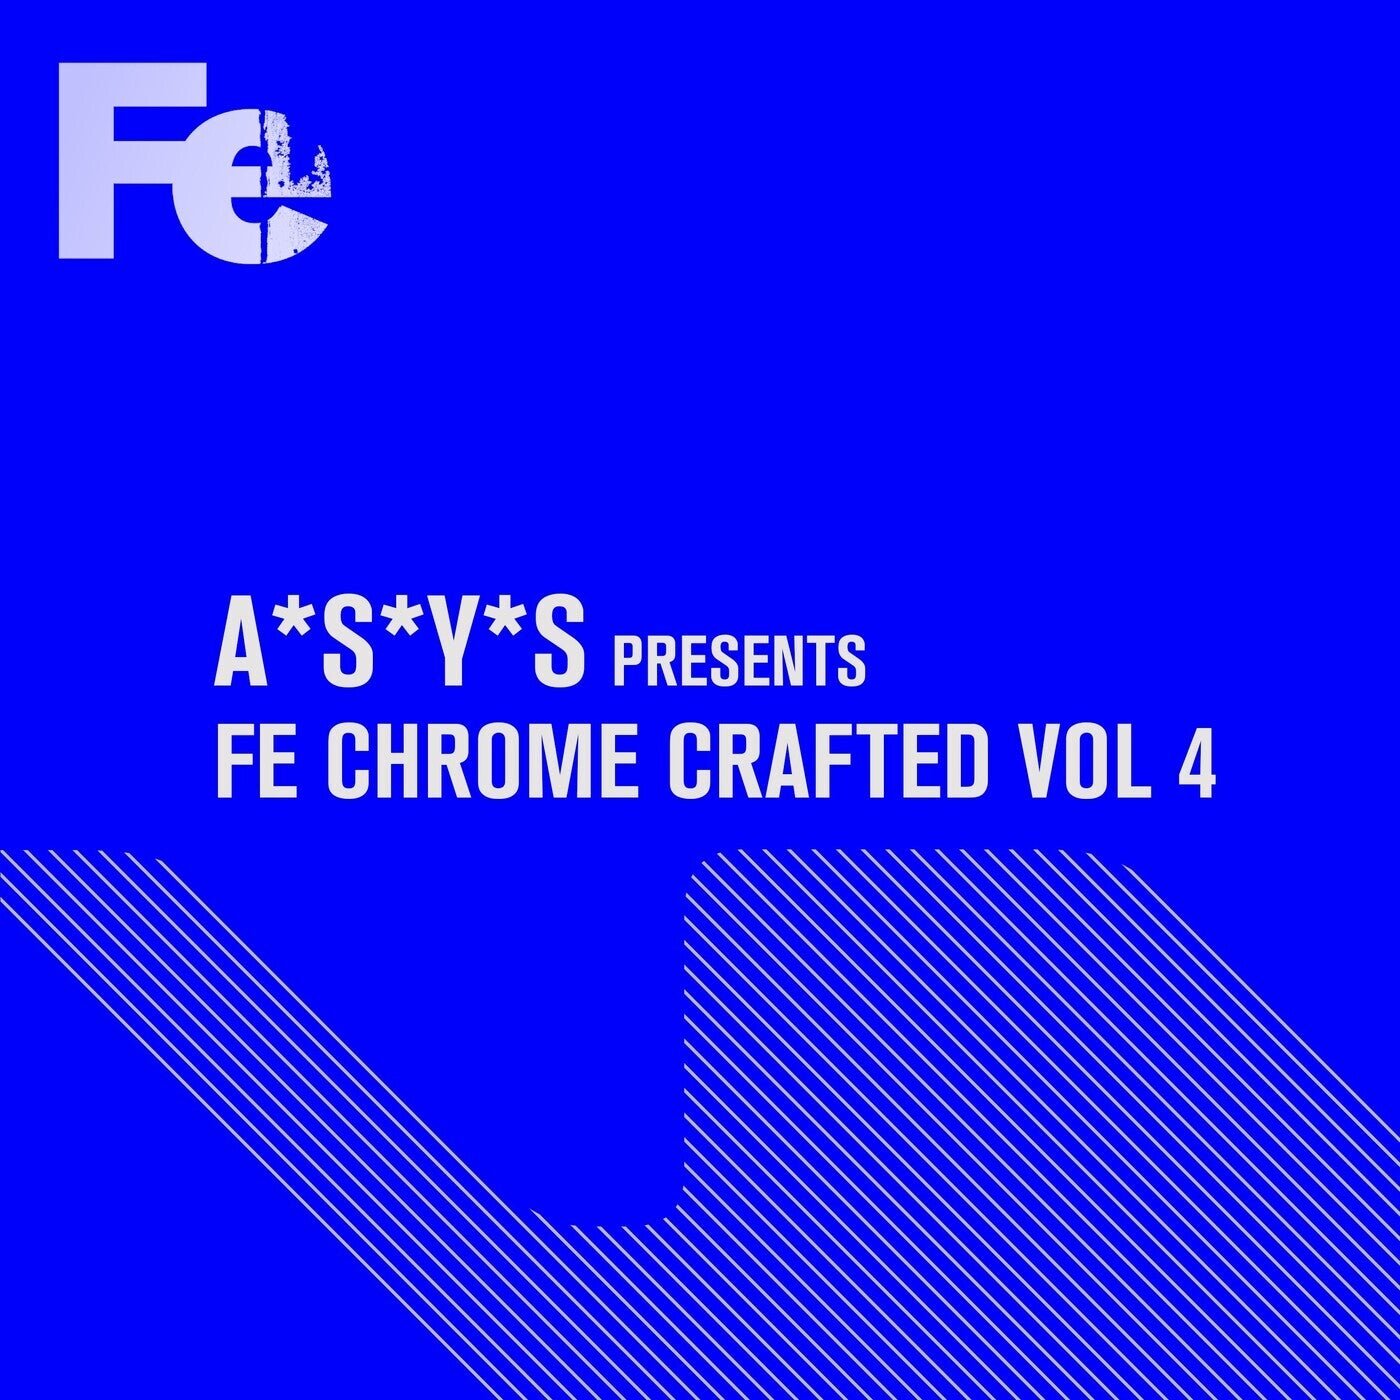 A*S*Y*S Presents Fe Chrome Crafted, Vol. 4